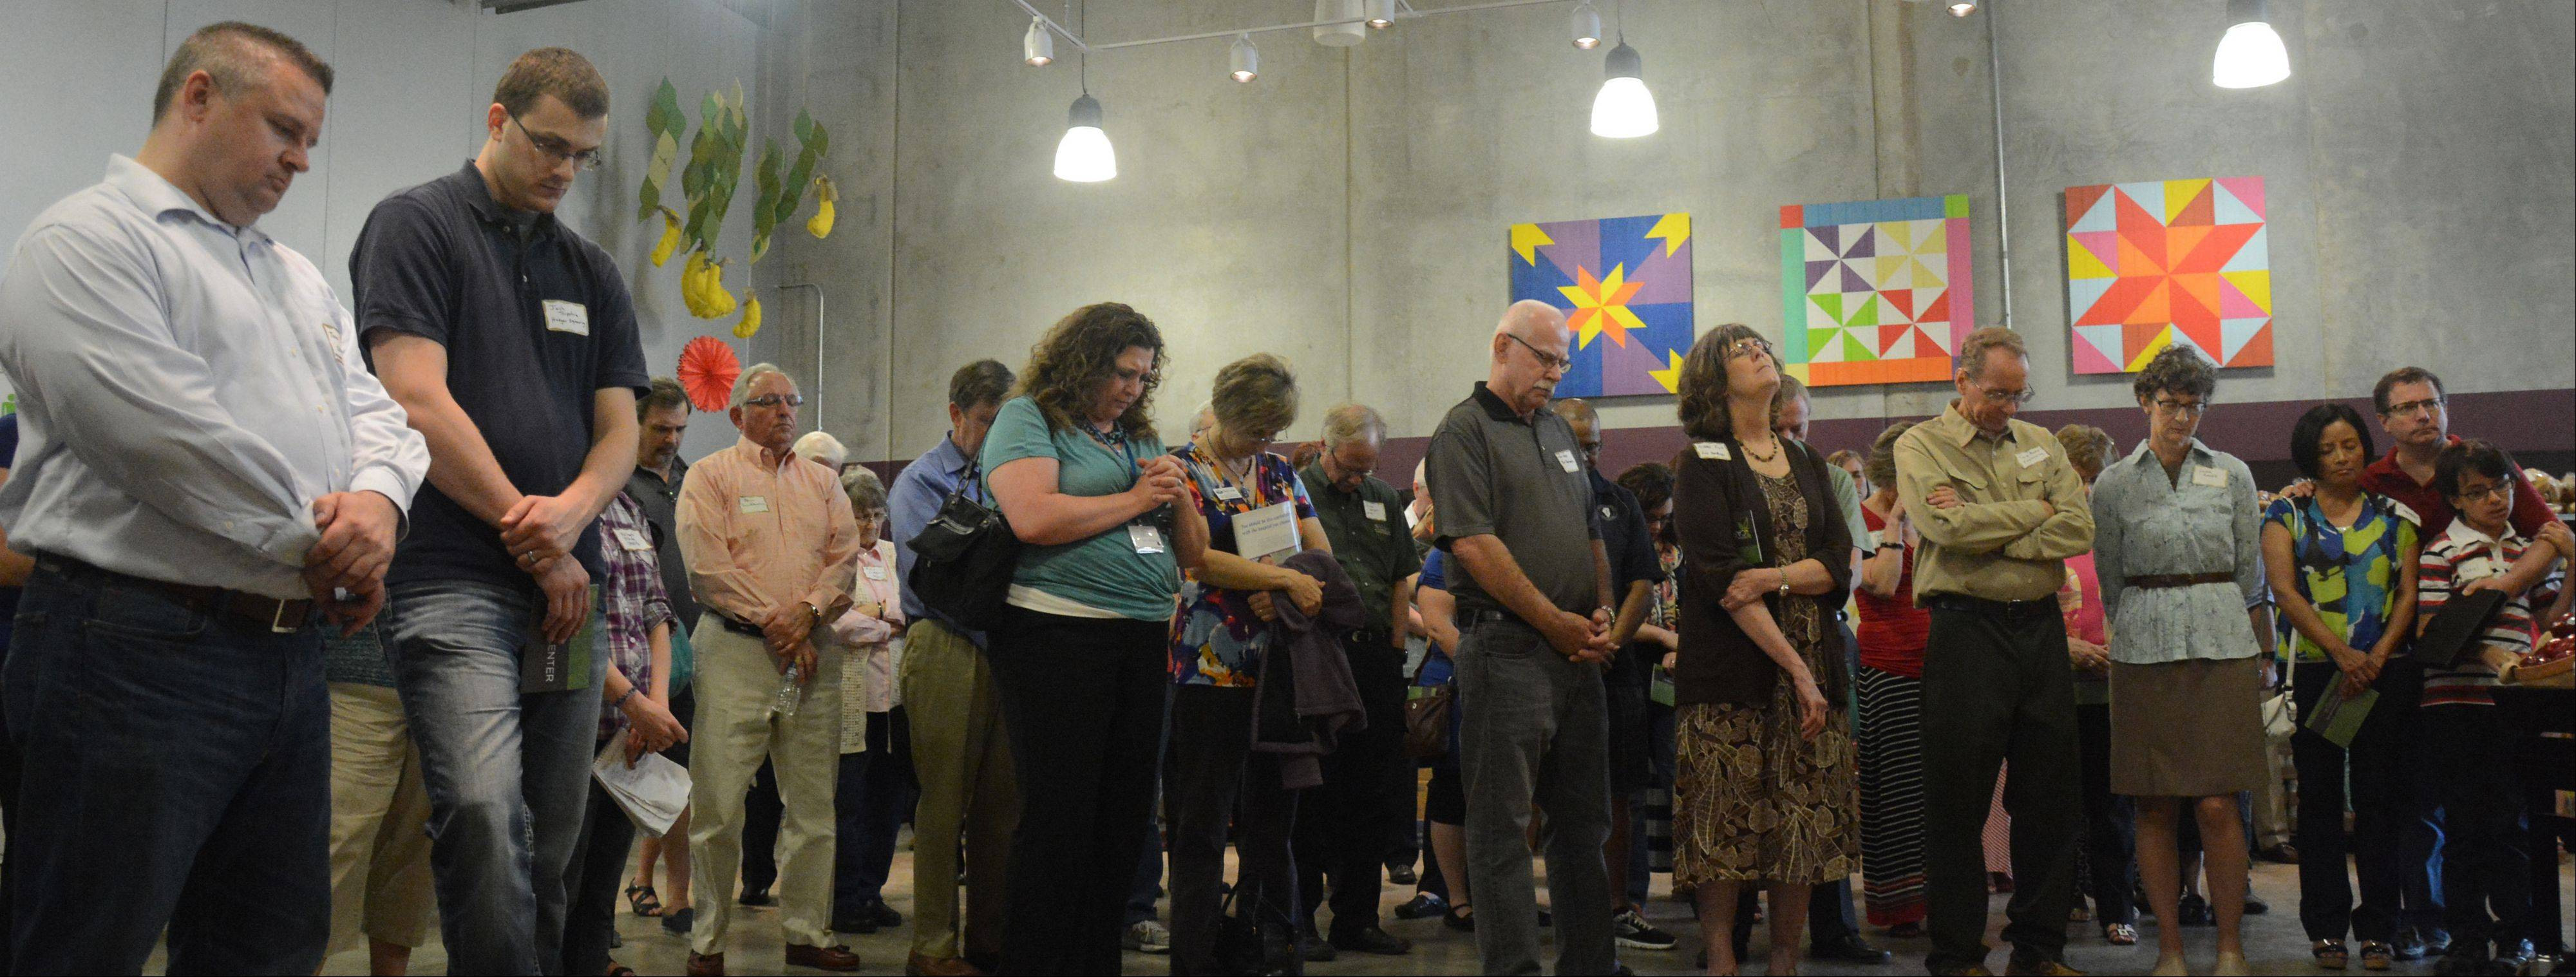 Attendees pray during the dedication of the Care Center at Willow Creek Community Church on Friday in South Barrington